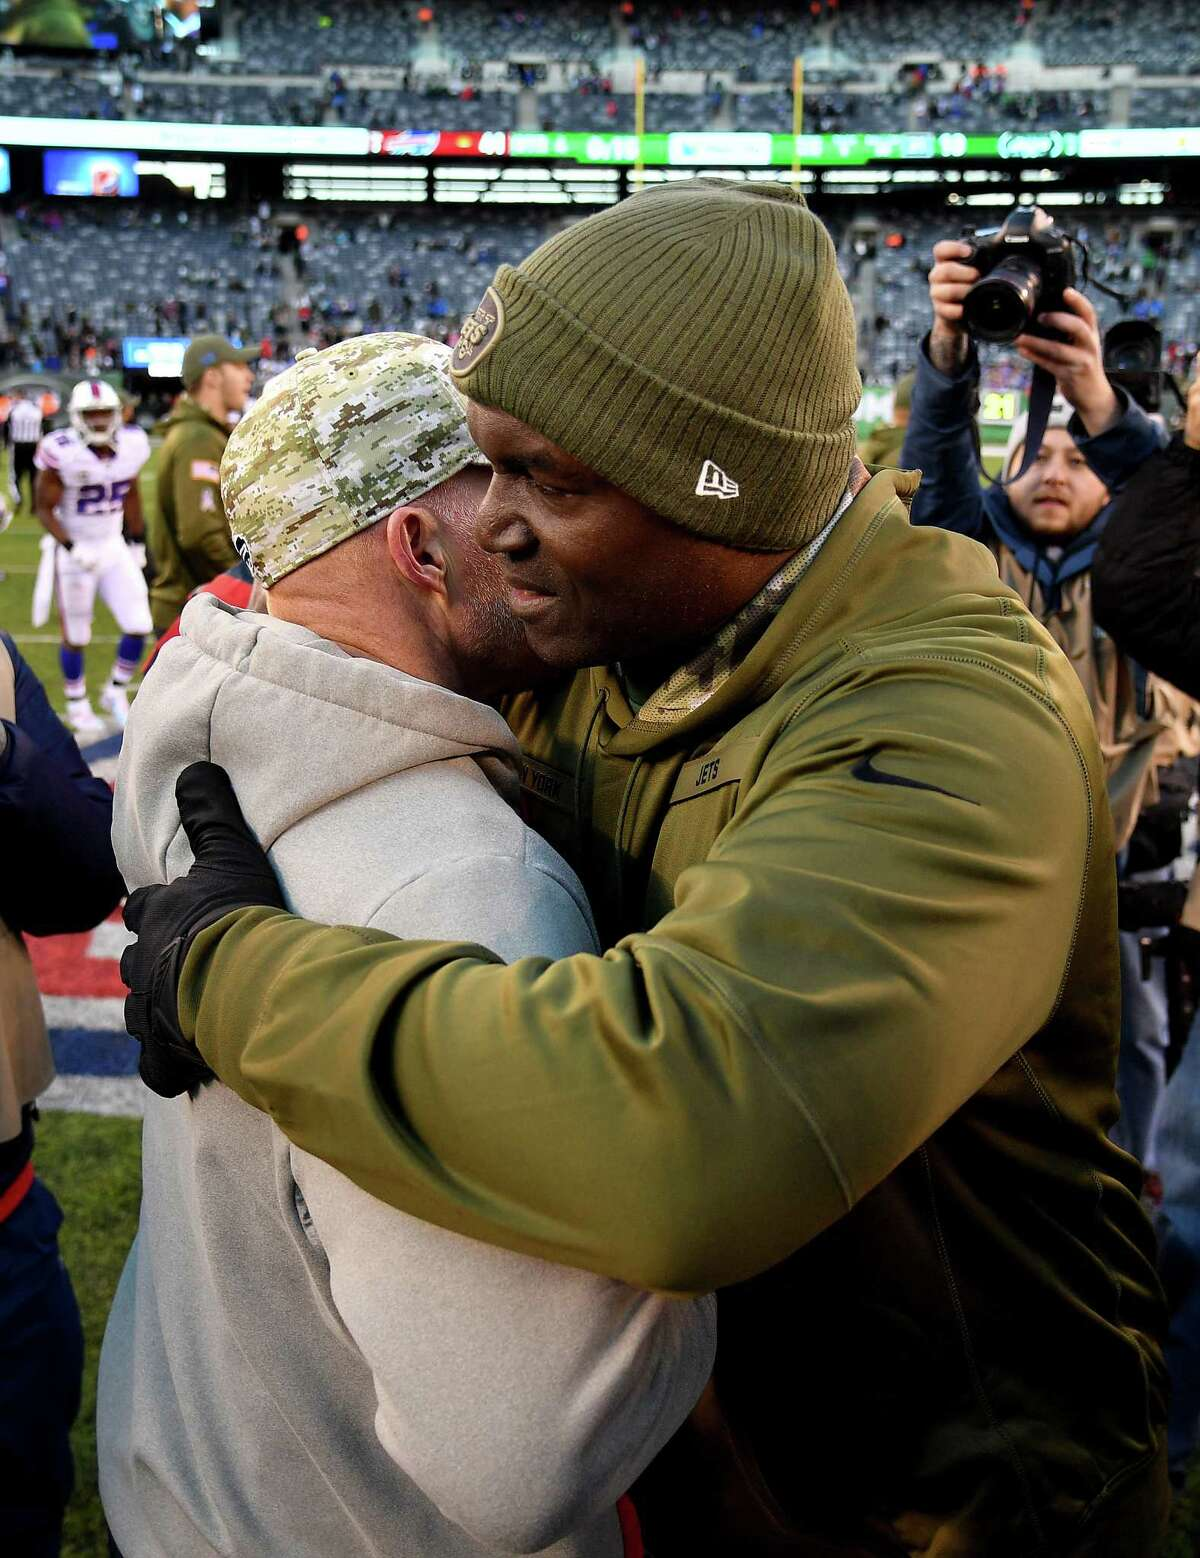 EAST RUTHERFORD, NEW JERSEY - NOVEMBER 11: Head coach Sean McDermott of the Buffalo Bills and head coach Todd Bowles of the New York Jets embrace after the Bills 41-10 win at MetLife Stadium on November 11, 2018 in East Rutherford, New Jersey. (Photo by Mark Brown/Getty Images)